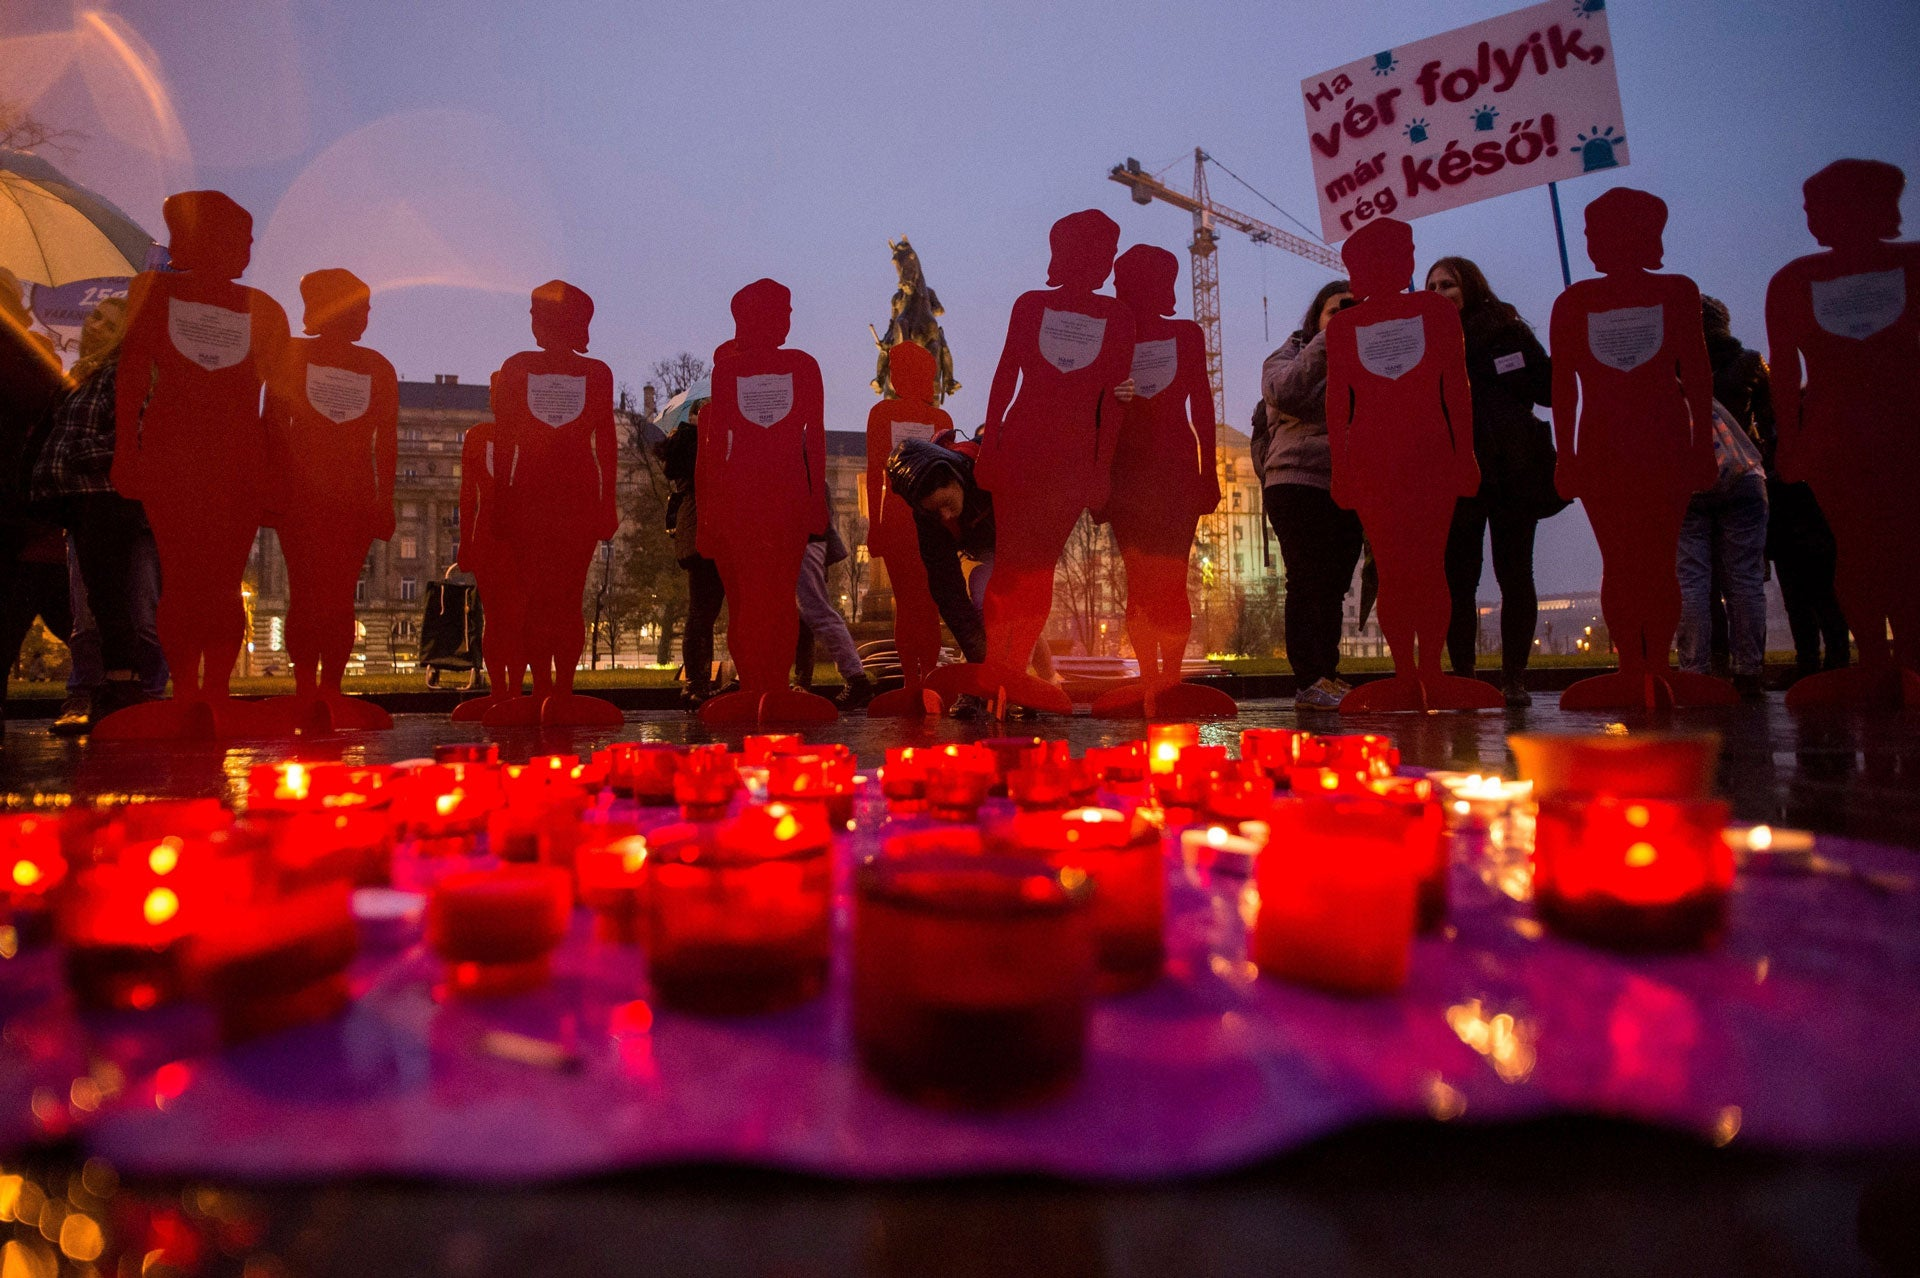 Candles and silhouettes representing victims are placed during a rally to mark the International Day for the Elimination of Violence Against Women outside the Parliament in Budapest, Hungary, November 25, 2018.